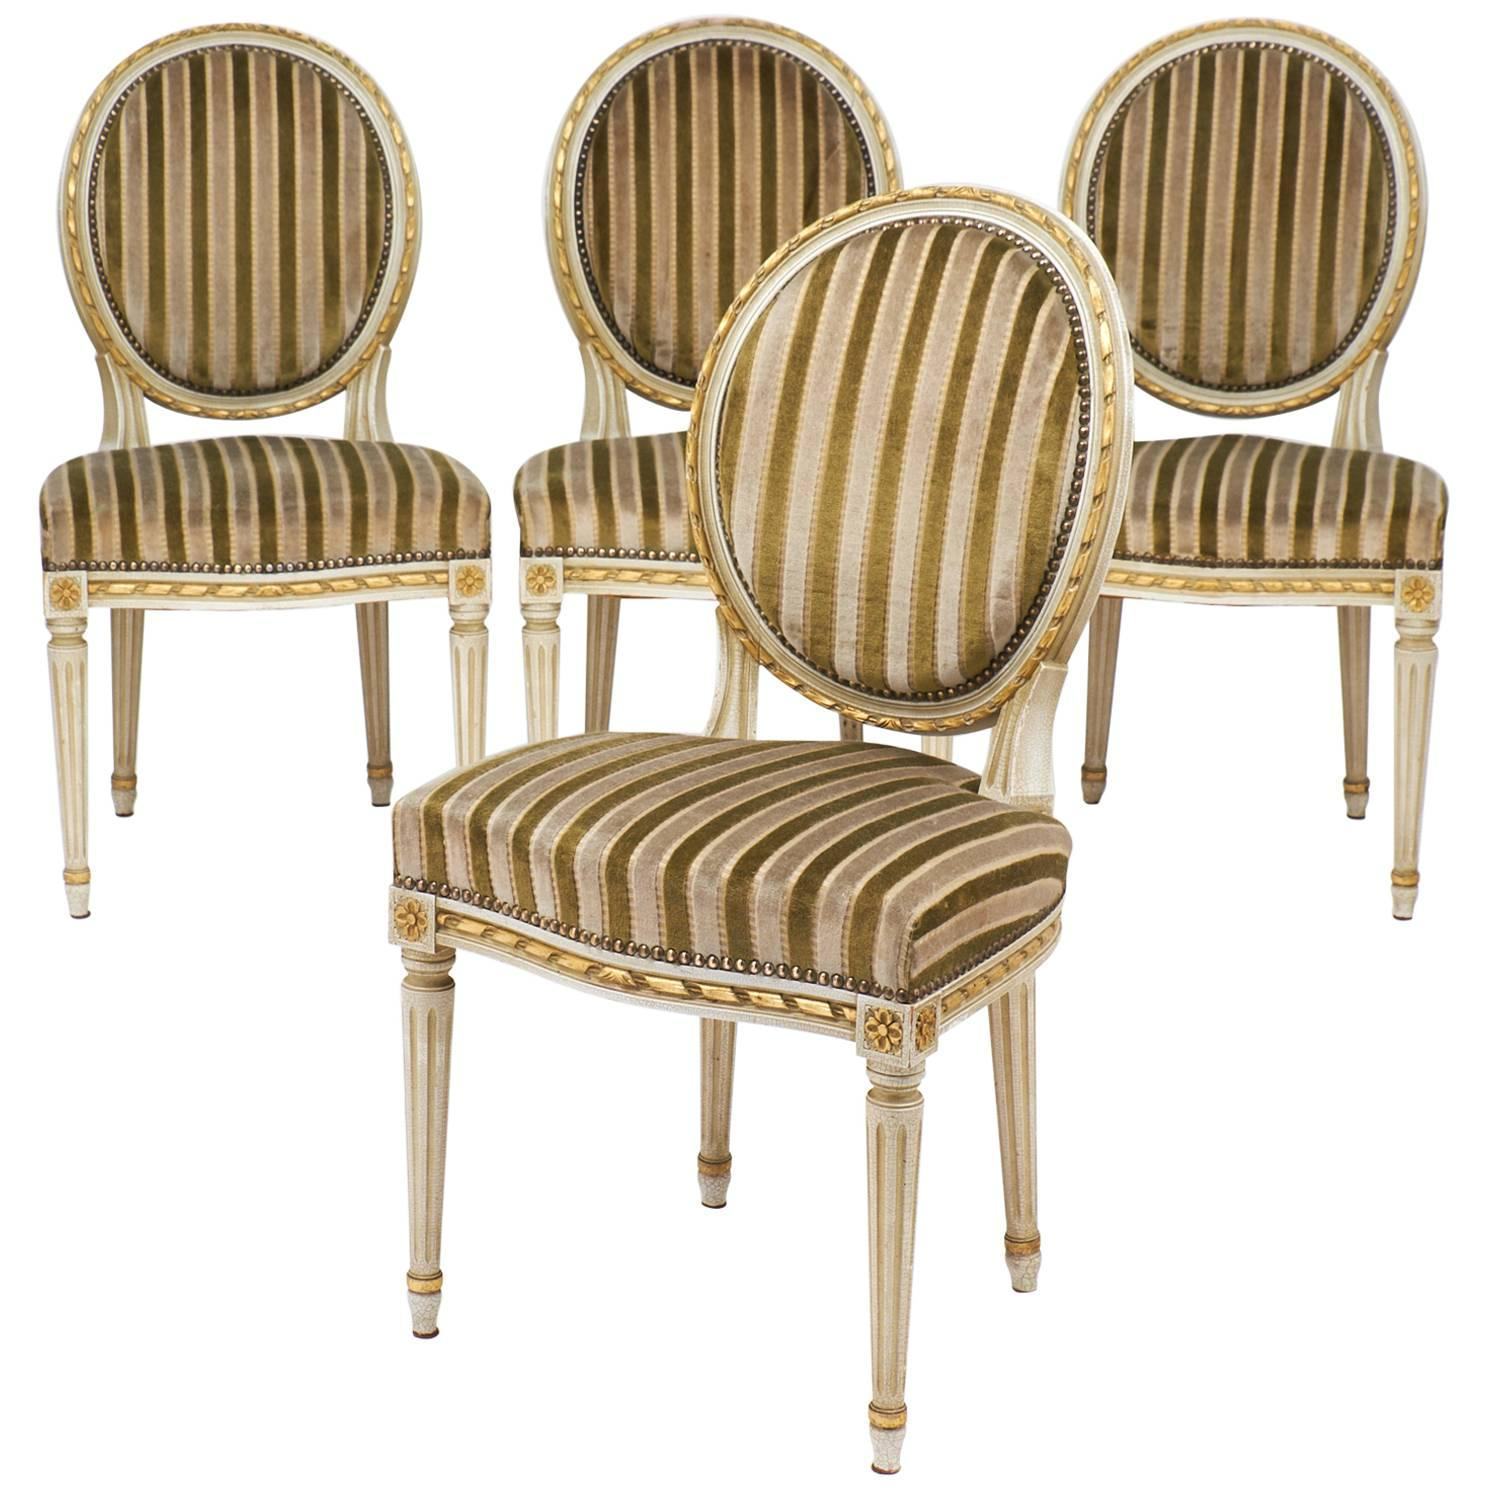 gold dining chairs activity for babies leaf striped velvet set of four antique louis xvi